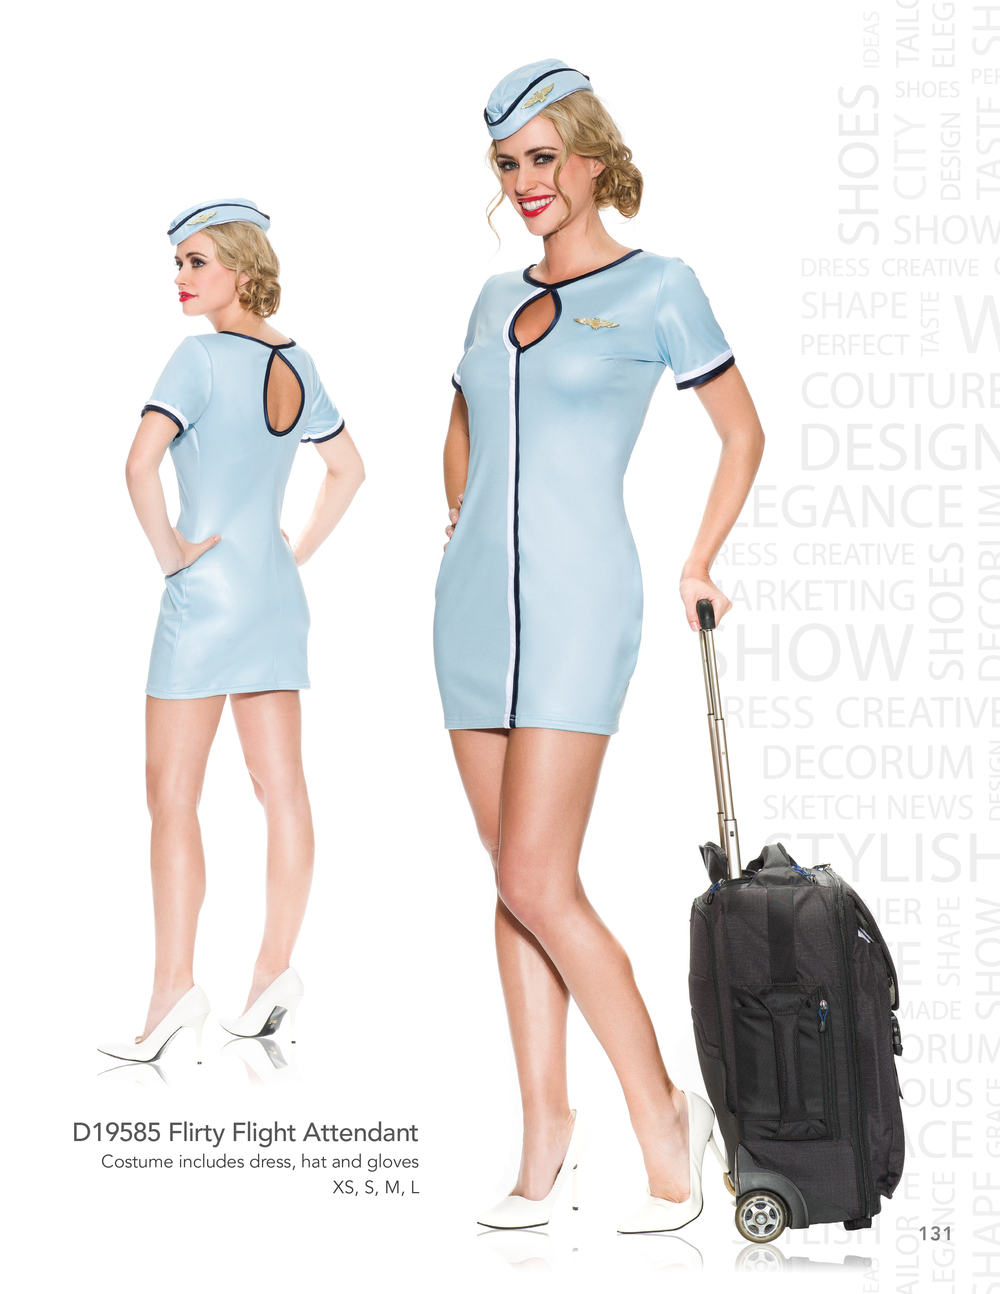 D19585 Flirty Flight Attendant